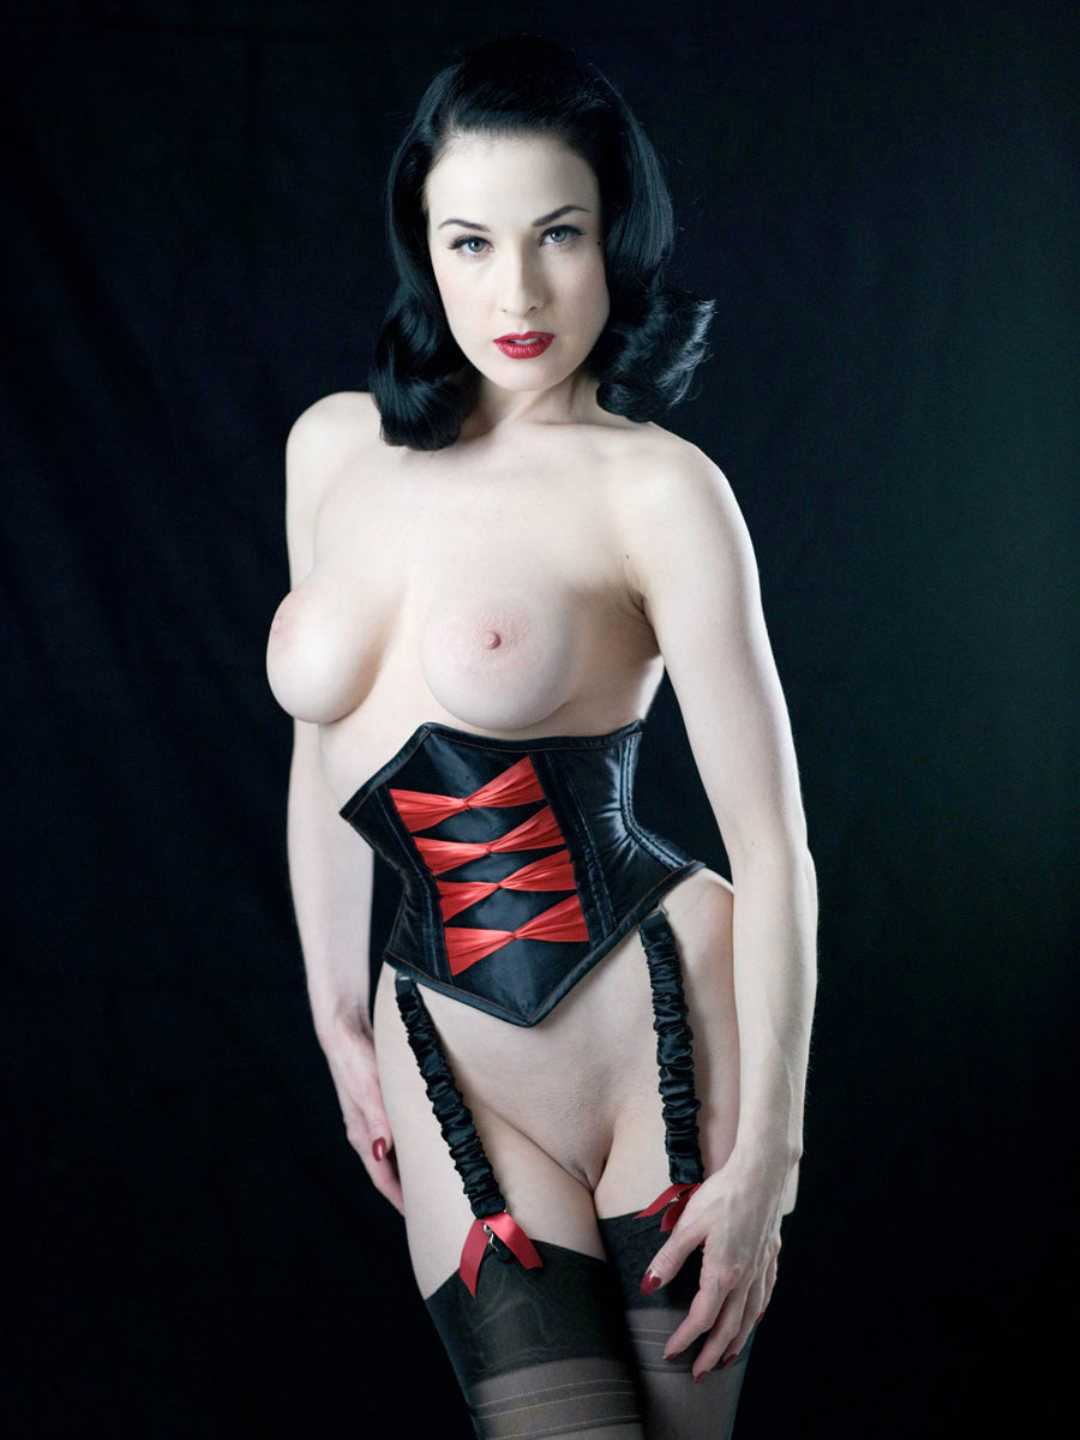 dita-von-teese-naked-pics-total-drama-and-family-guy-porn